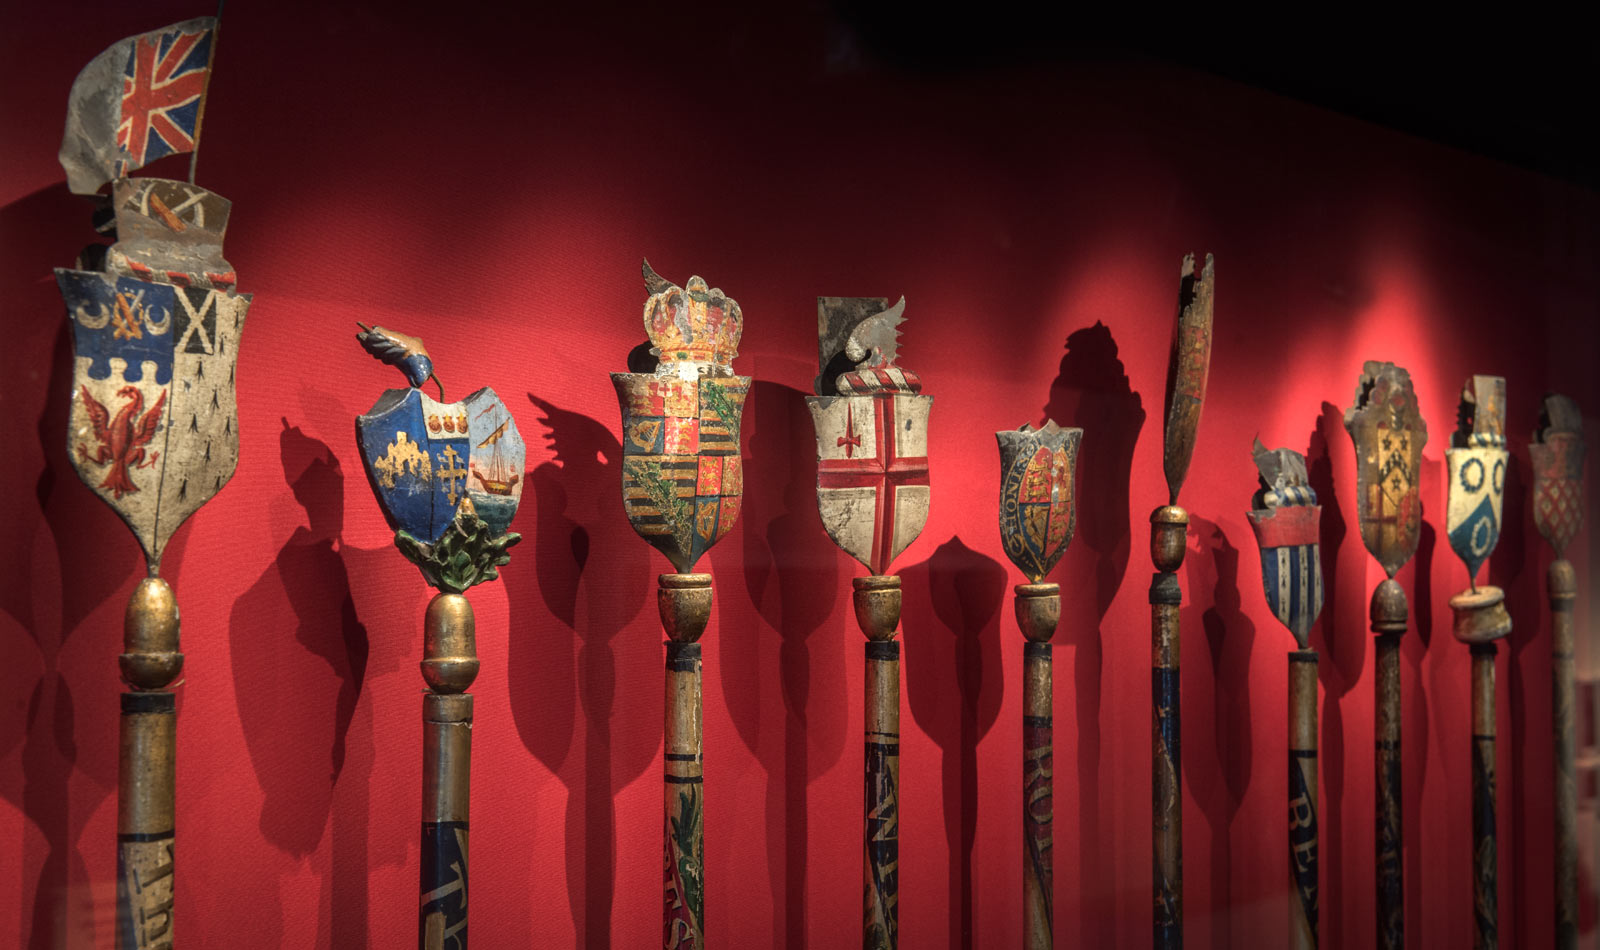 Staves used in City of London ceremonies on display in the City gallery.